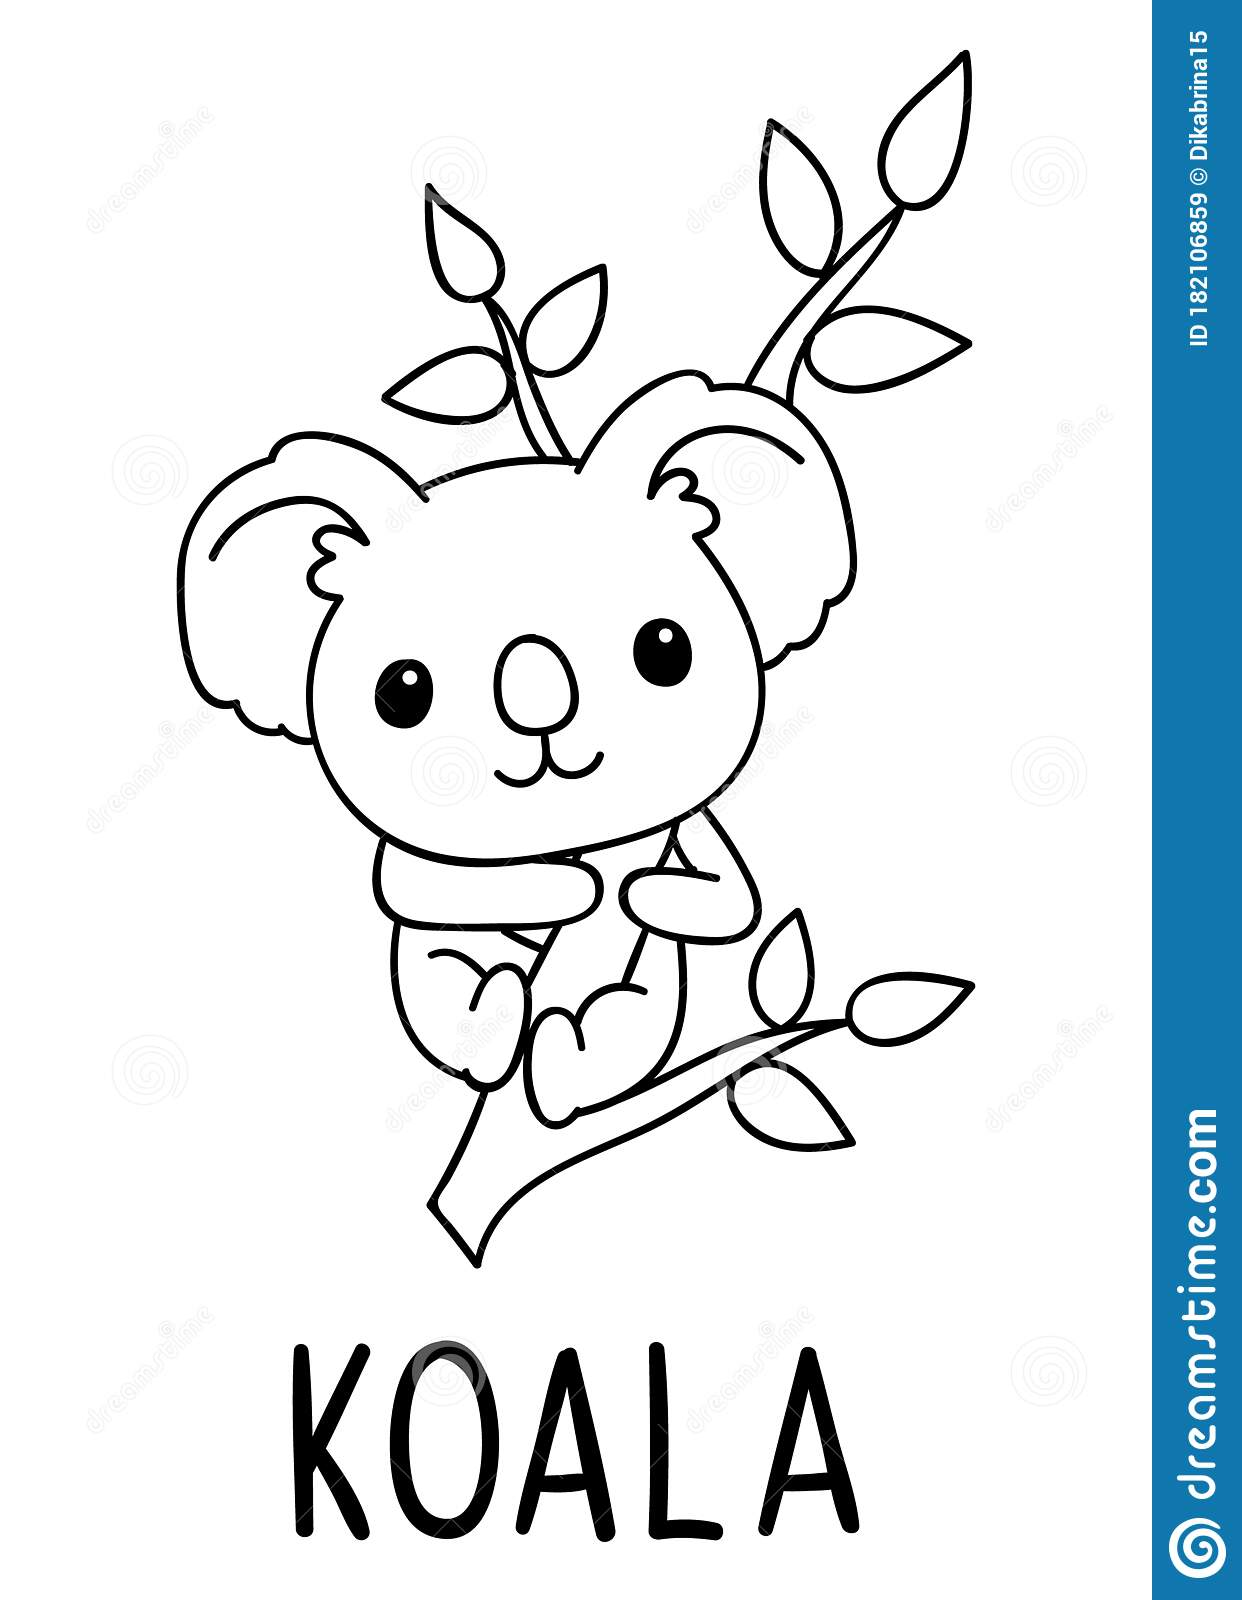 Coloring Pages, Black And White Cute Kawaii Hand Drawn ...